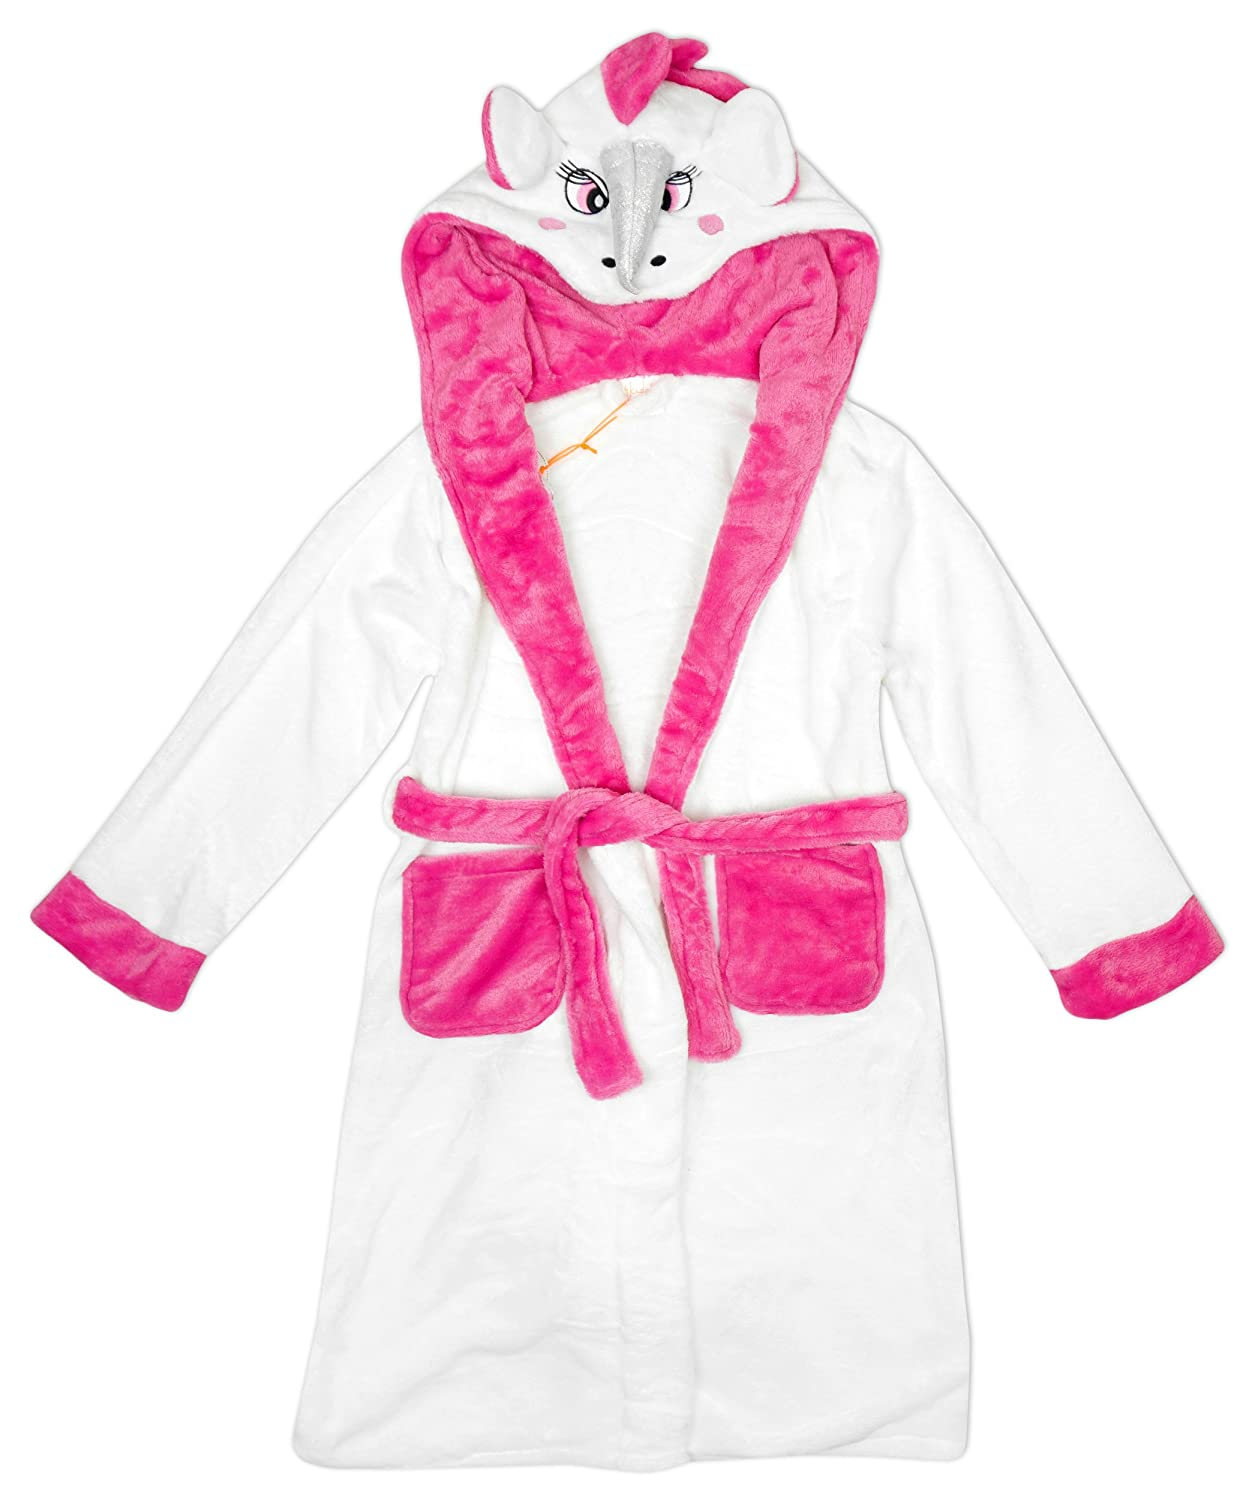 Girls Bath Robe: Amazon.co.uk: Clothing